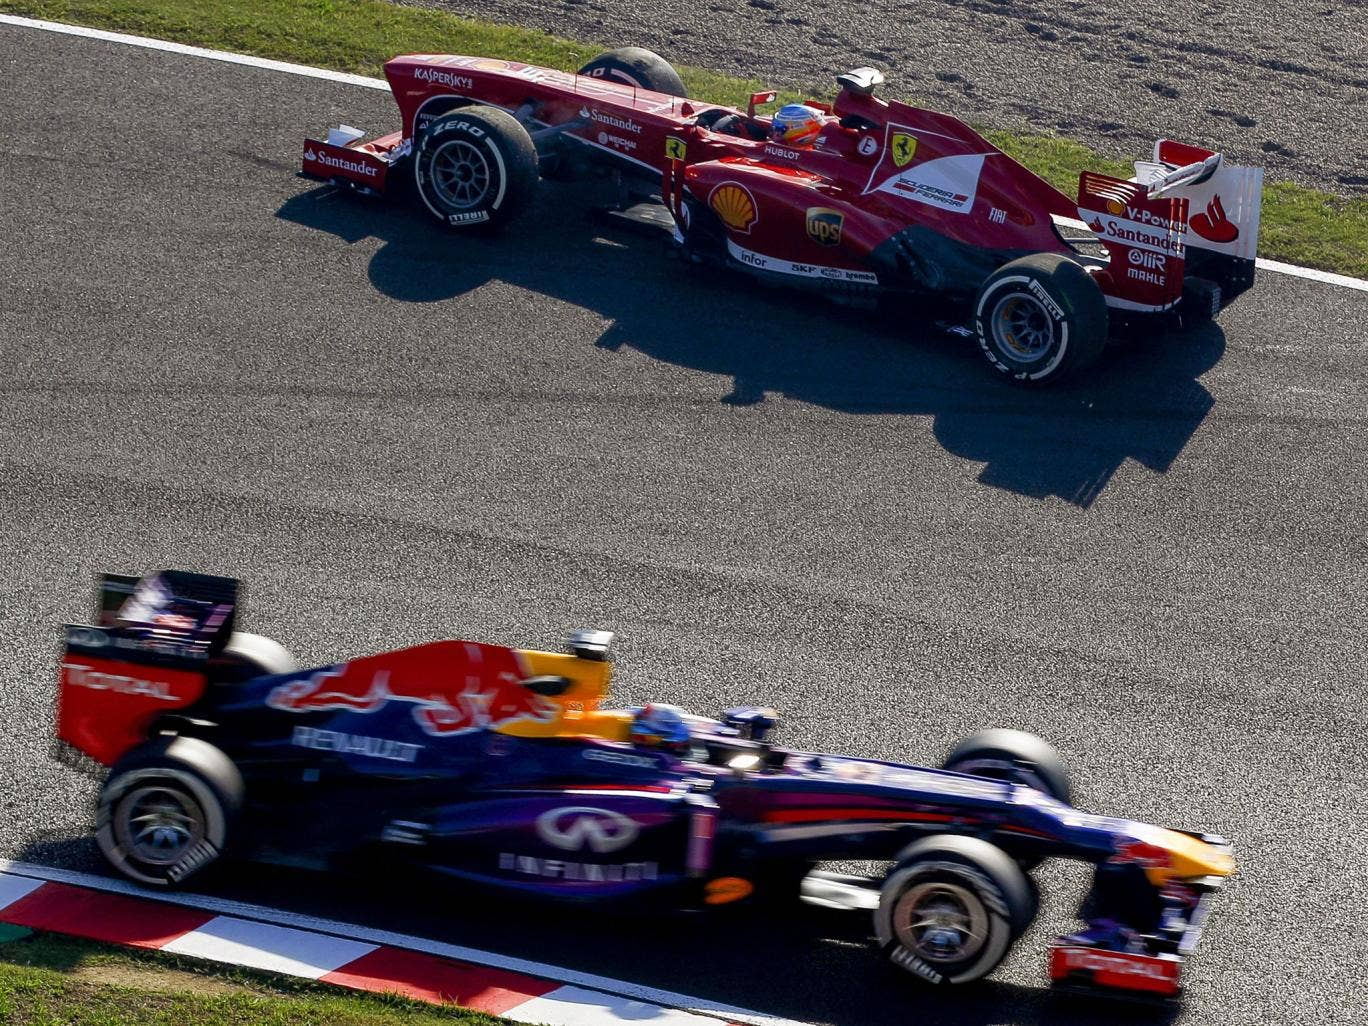 Sebastian Vettel (bottom) drives past Fernando Alonso, who is facing the wrong way after spinning during practice